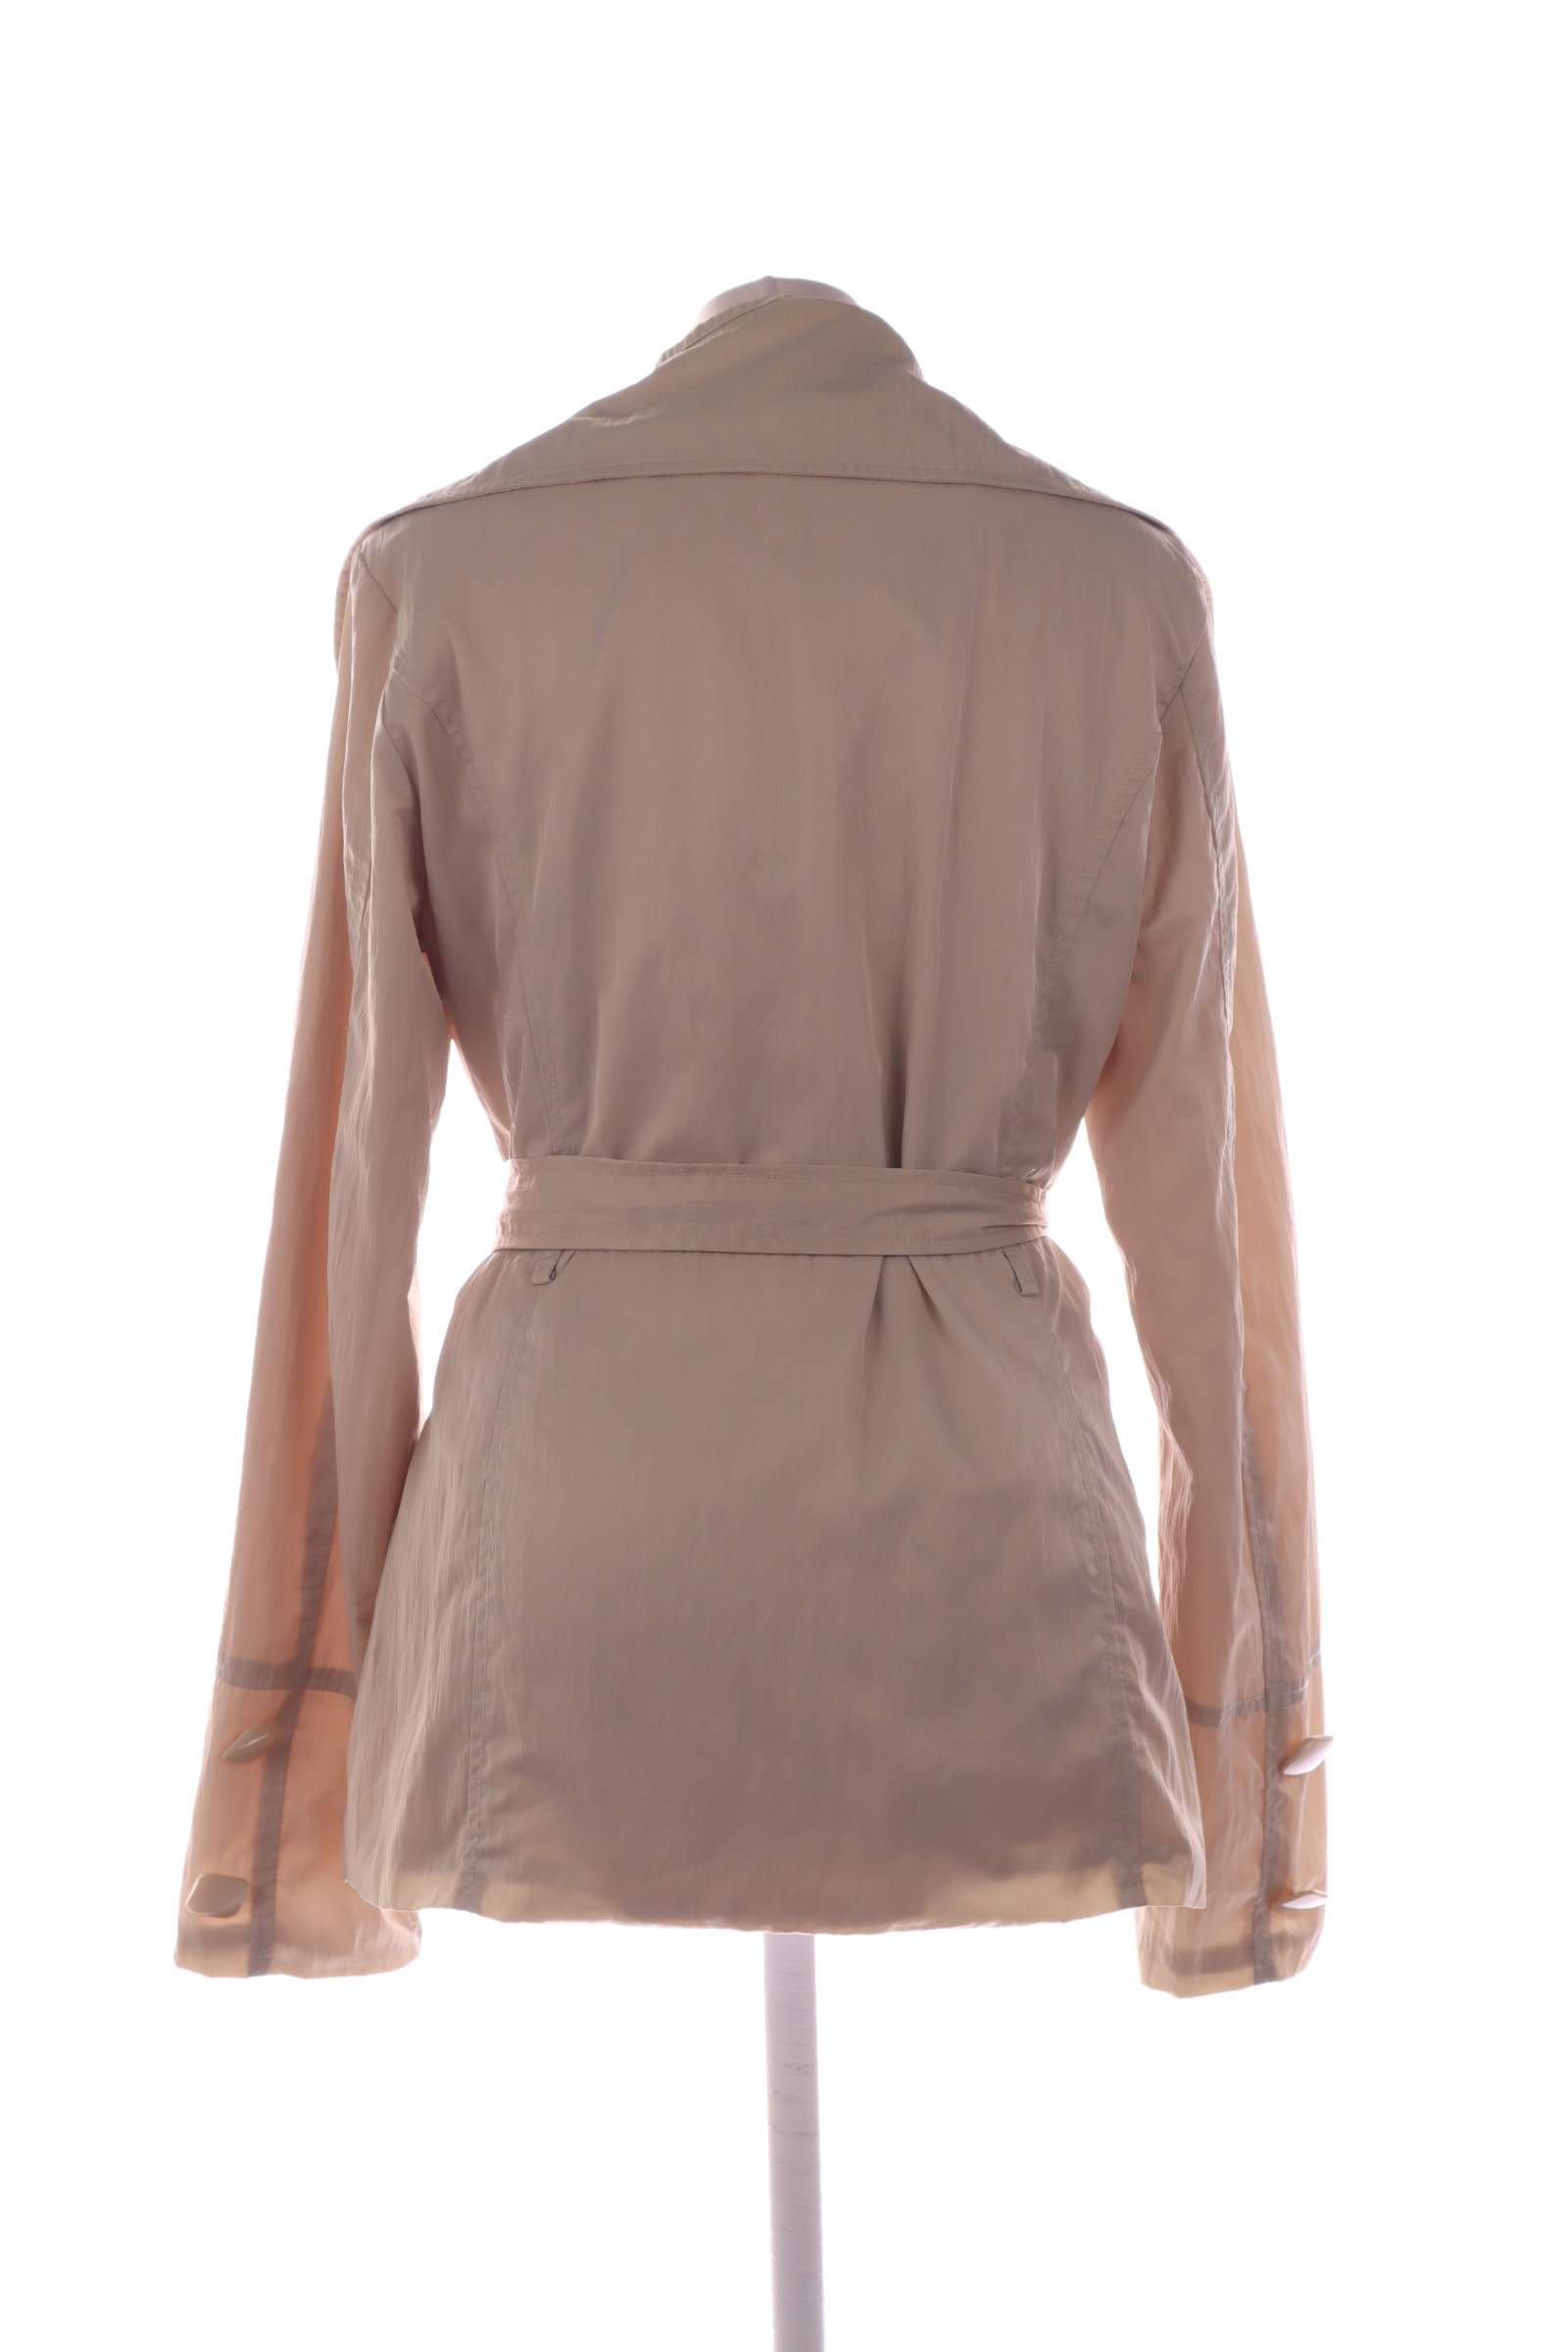 New fashion Beige Jacket - upty.store